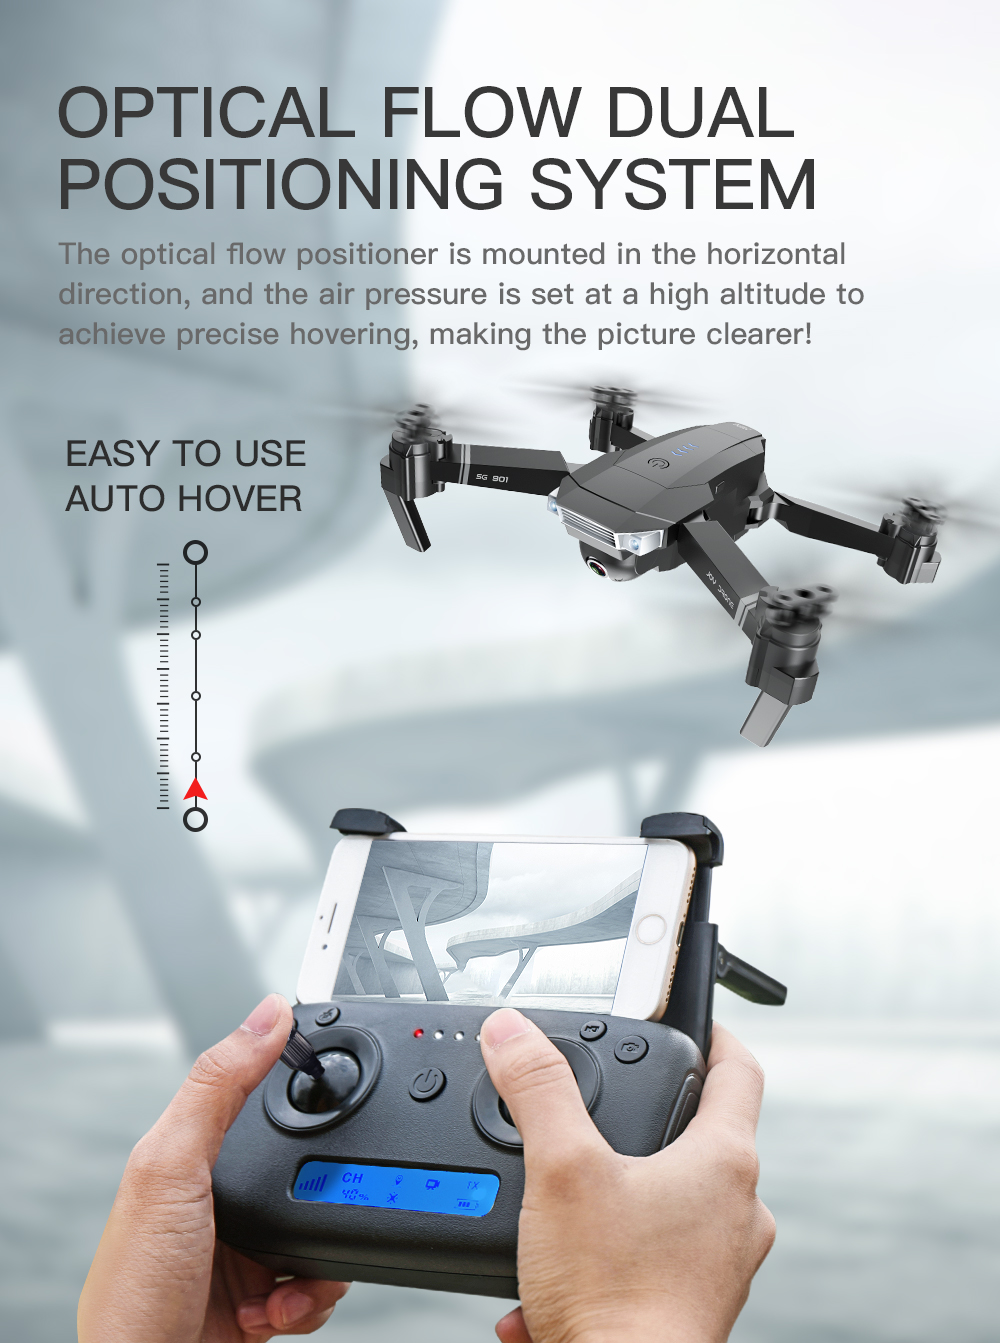 SG901 Drone Optical Flow Positioning